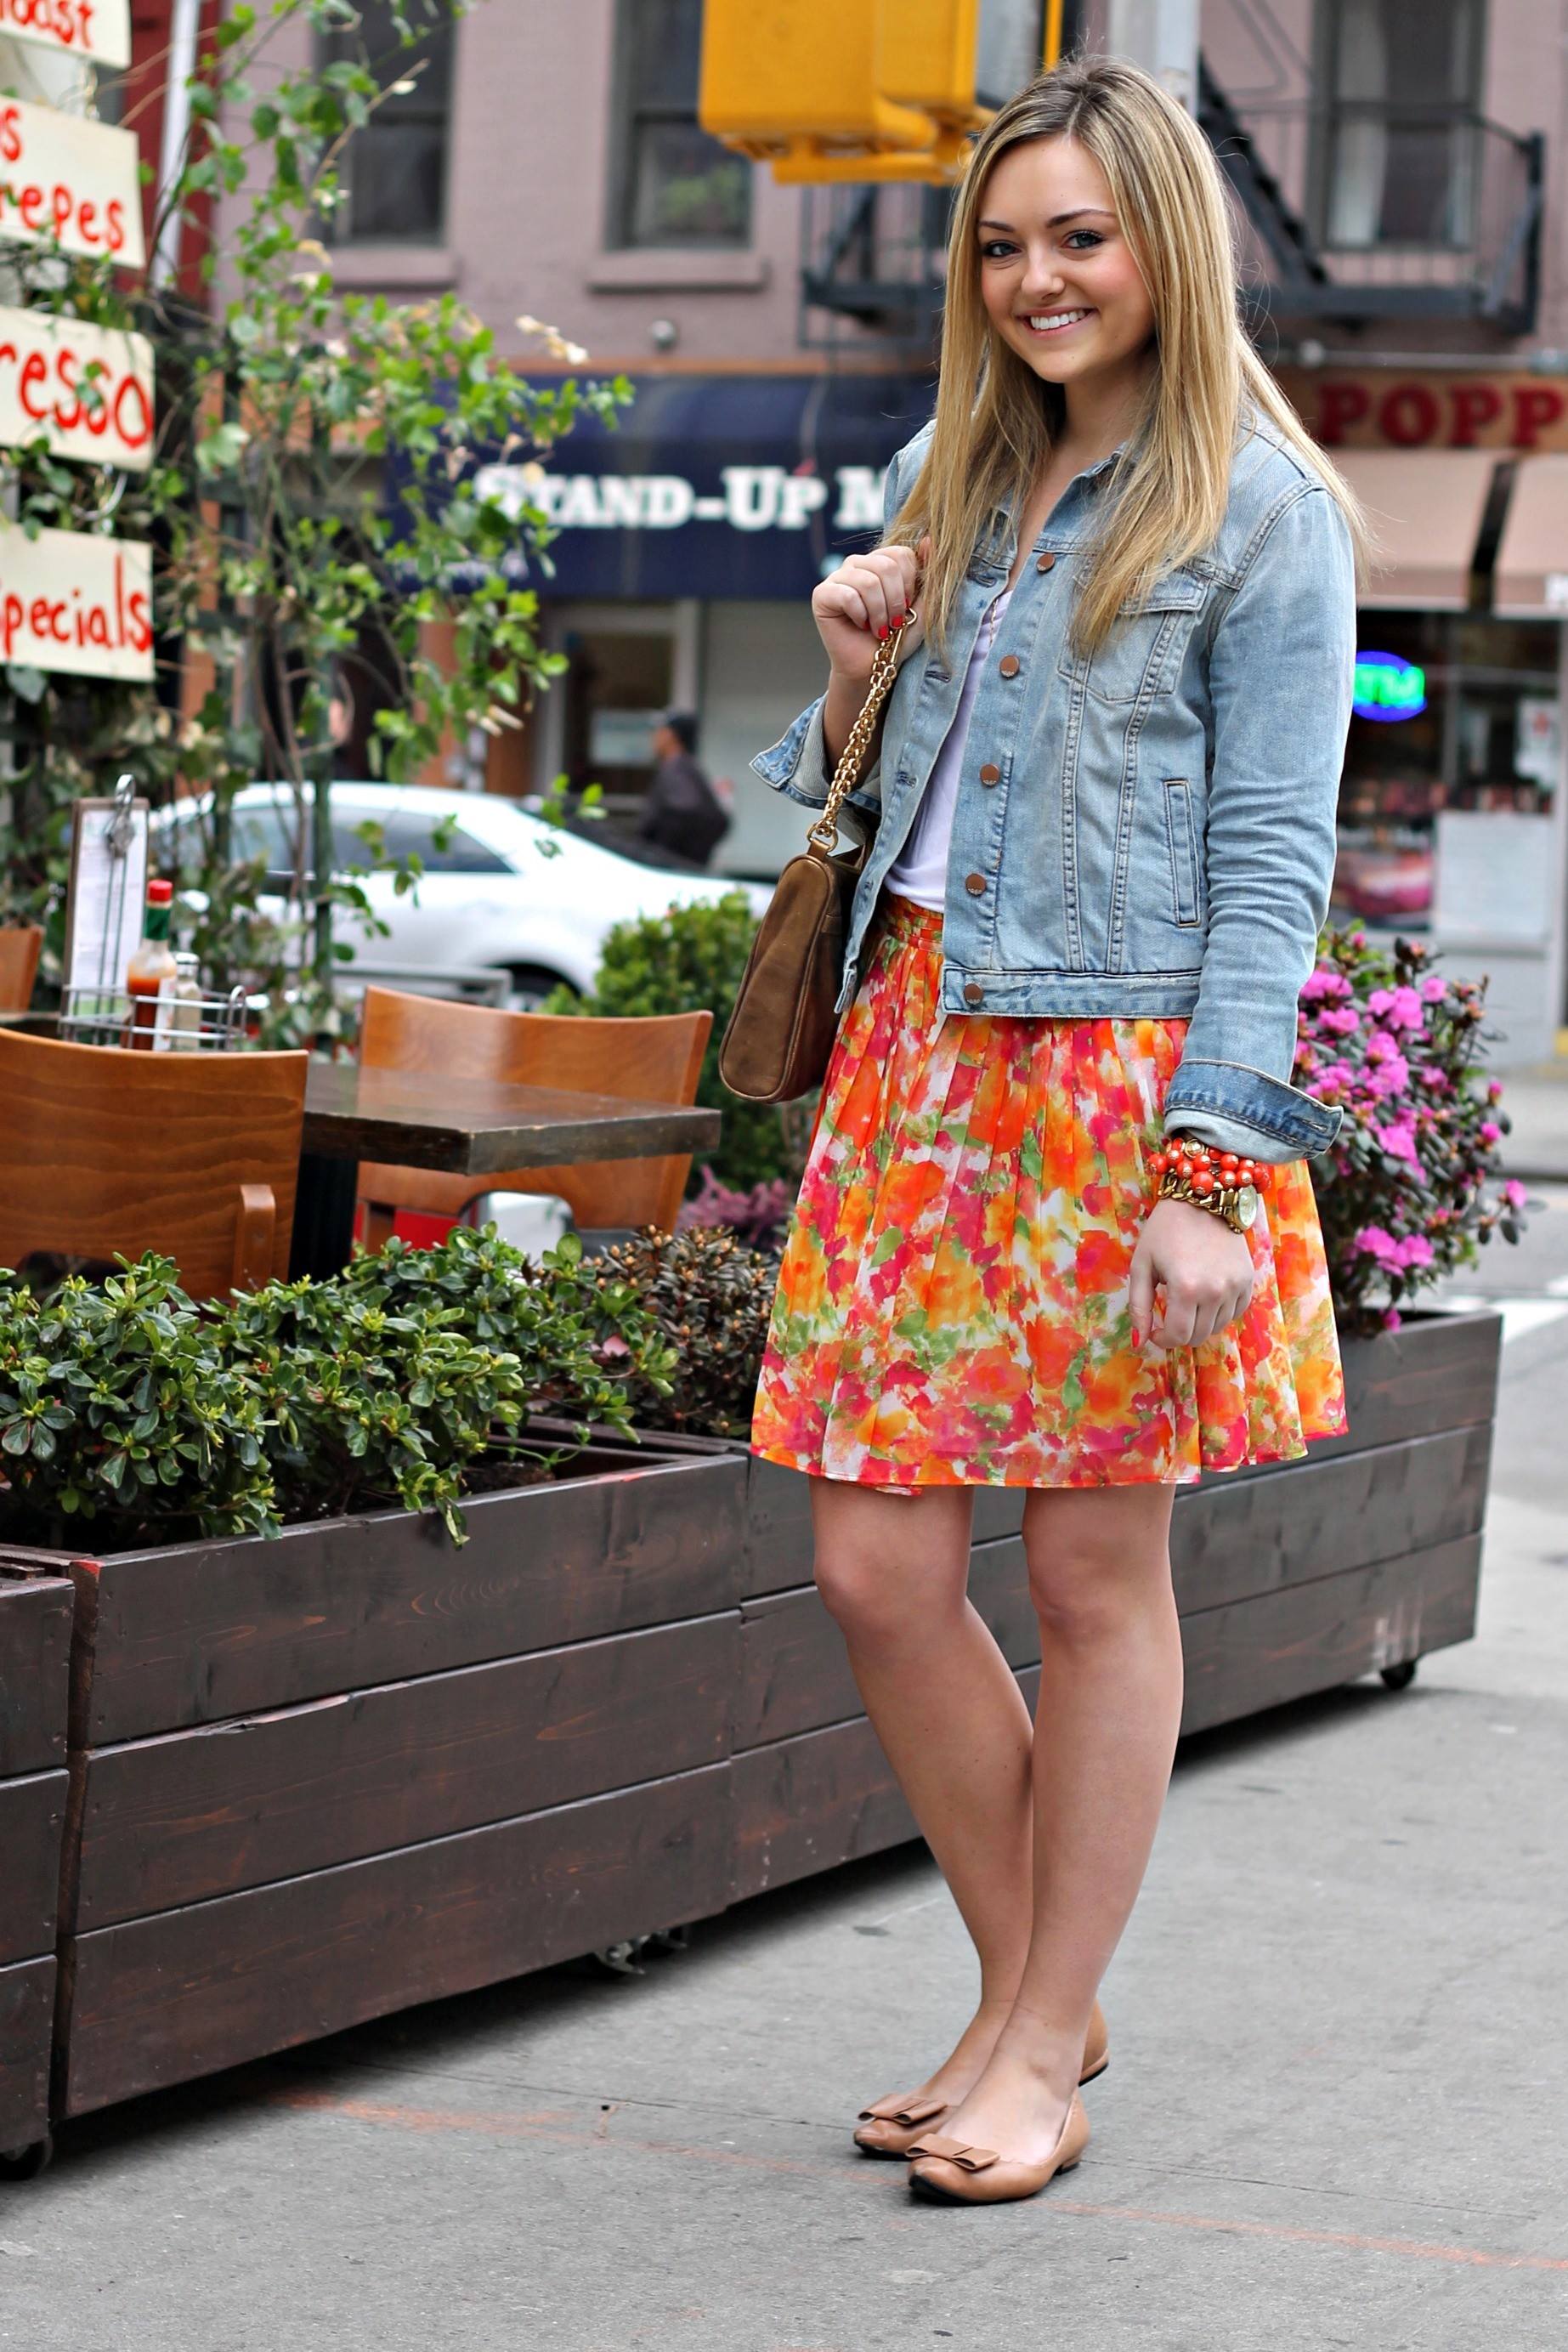 Bow Tie New City >> Springtime Style — bows & sequins